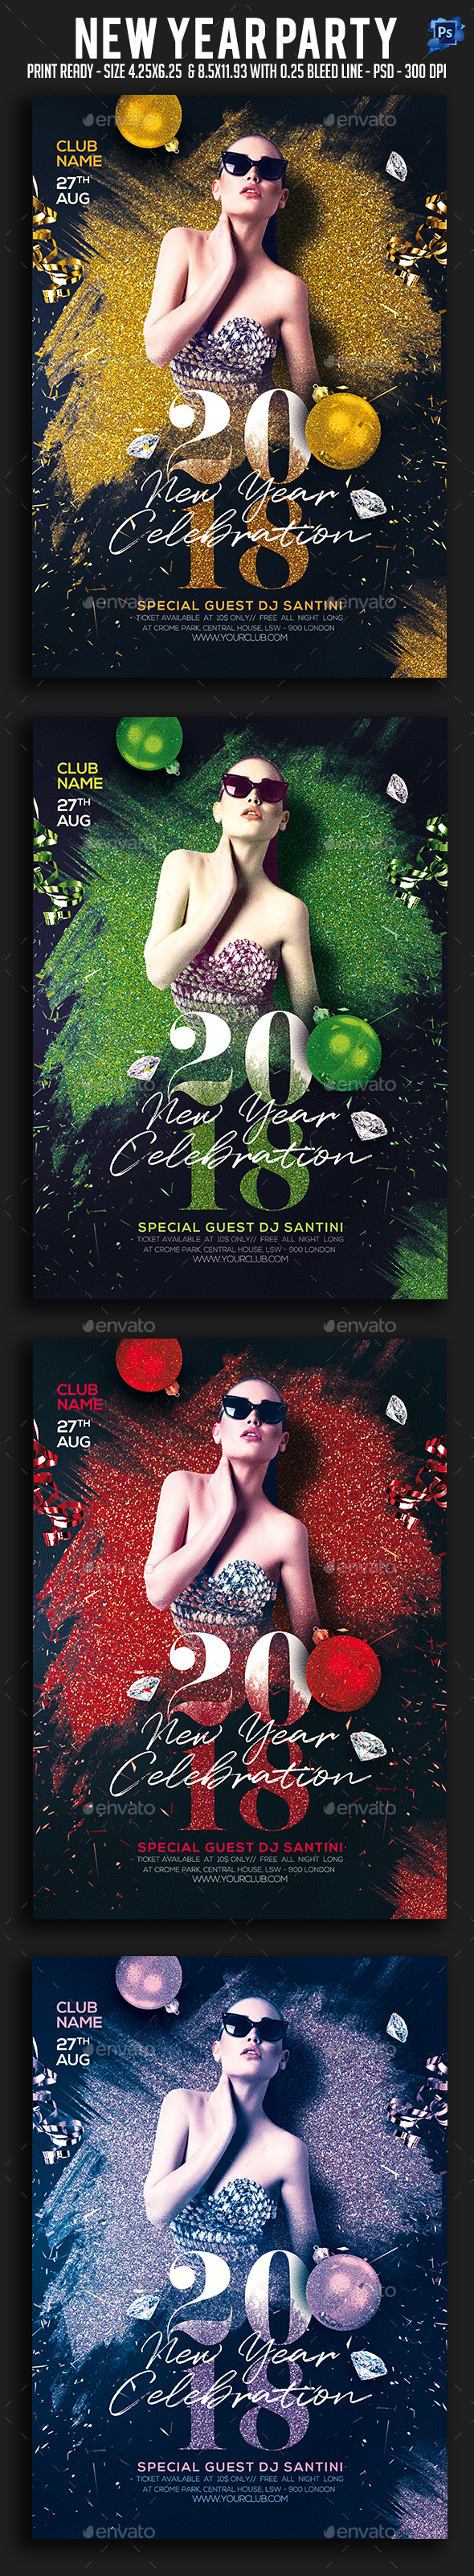 GraphicRiver New Year Party Flyer 20992930